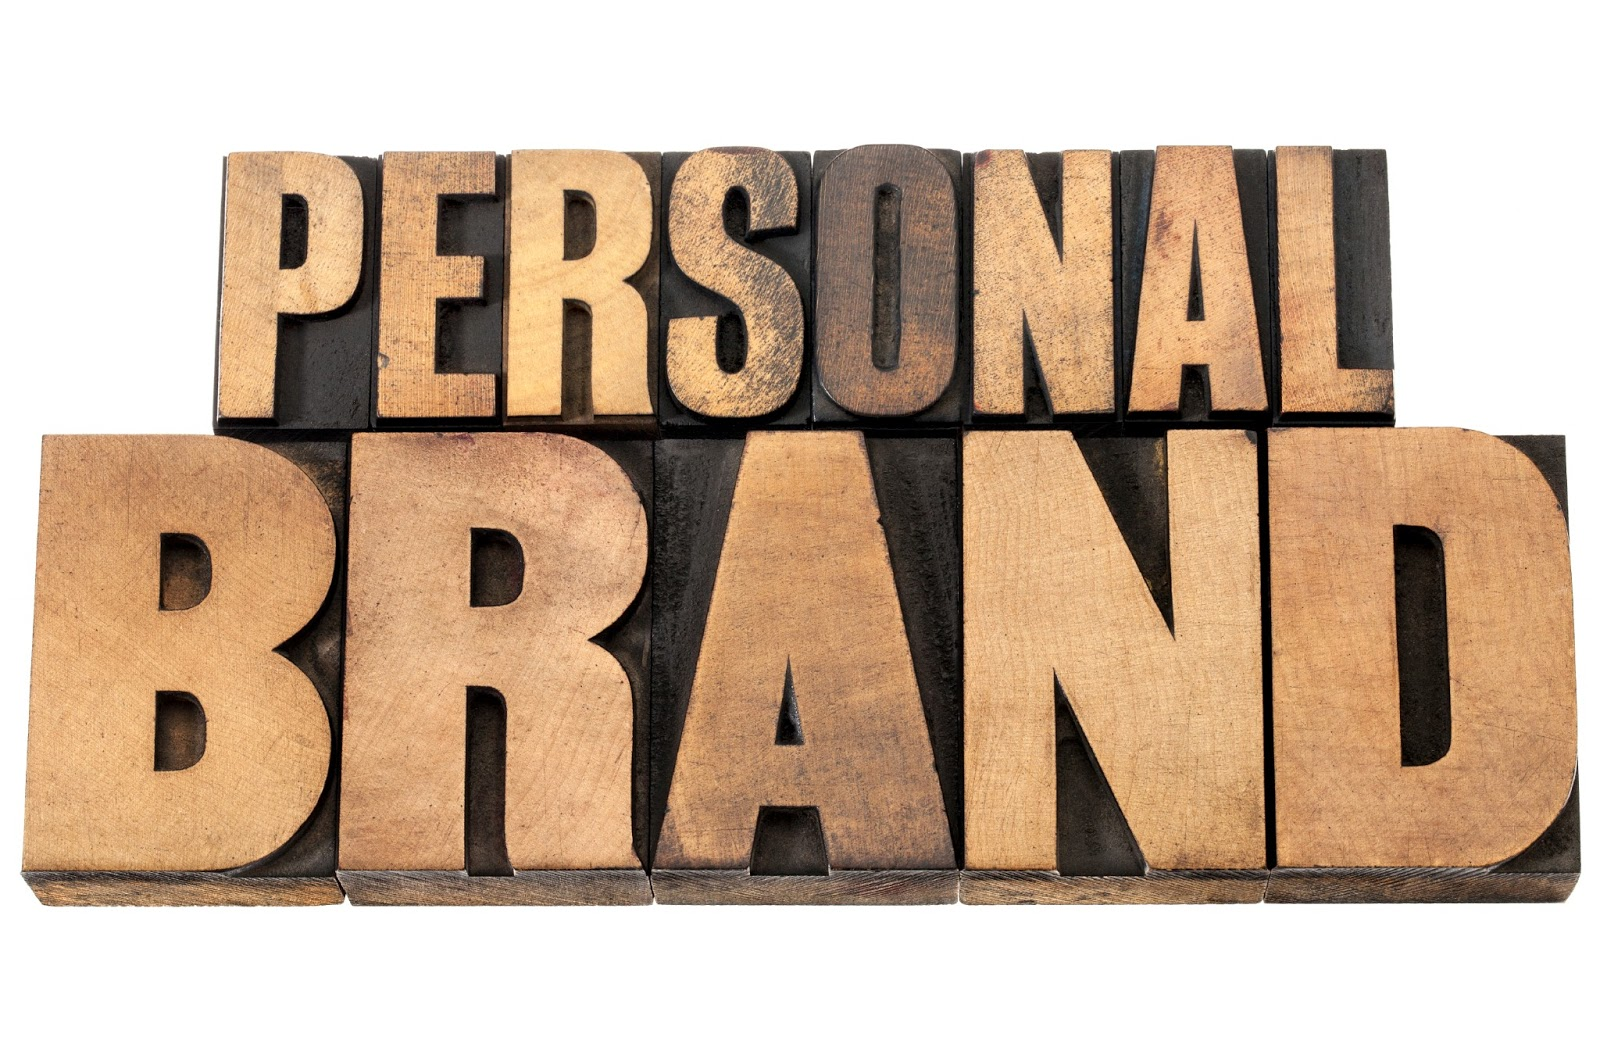 financial services marketing and communication content and personal brand shameless self promotion or service